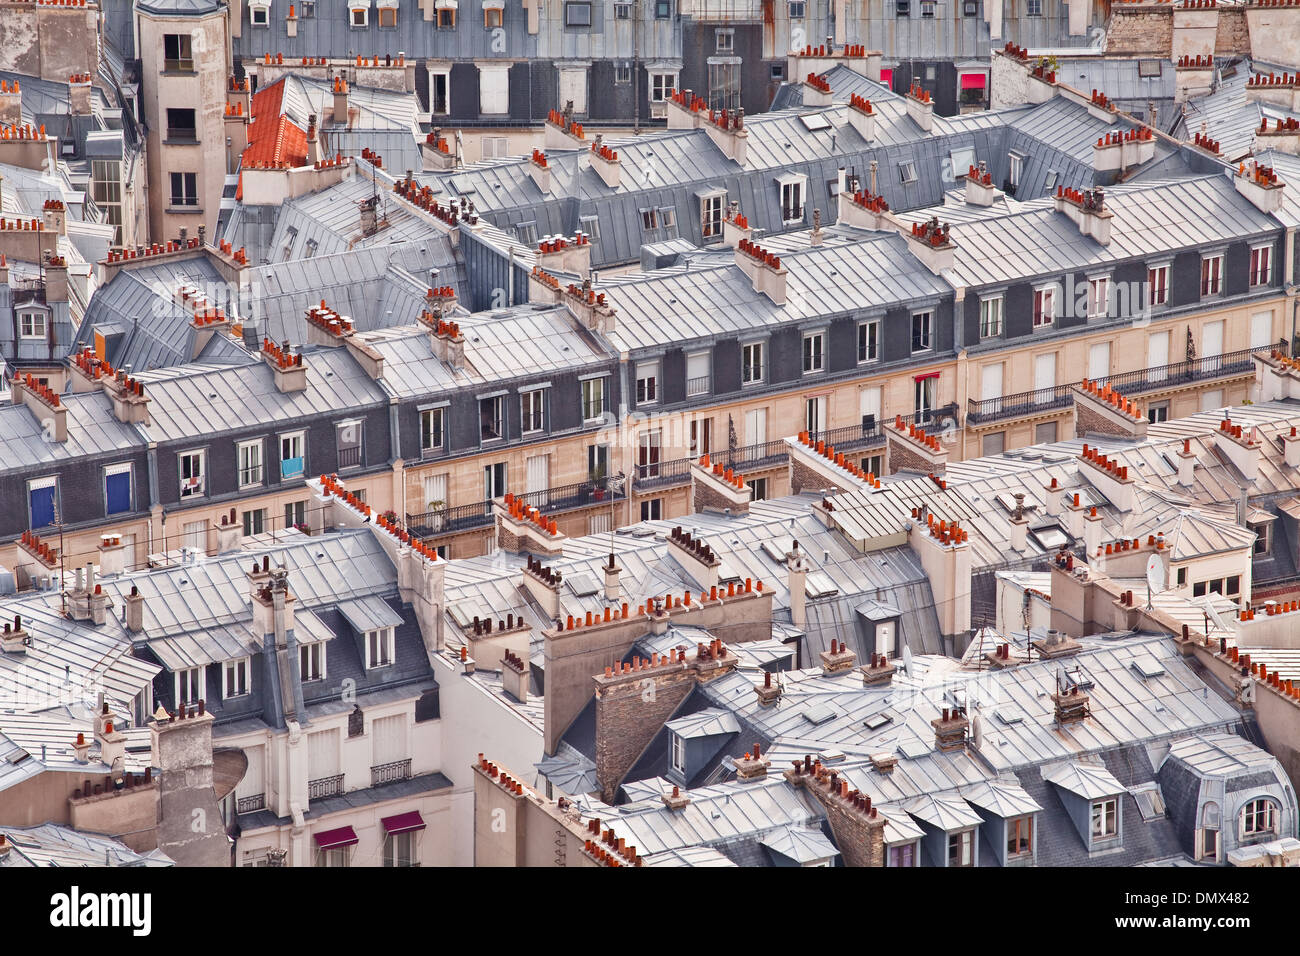 The rooftops of Paris from the Eiffel Tower. - Stock Image